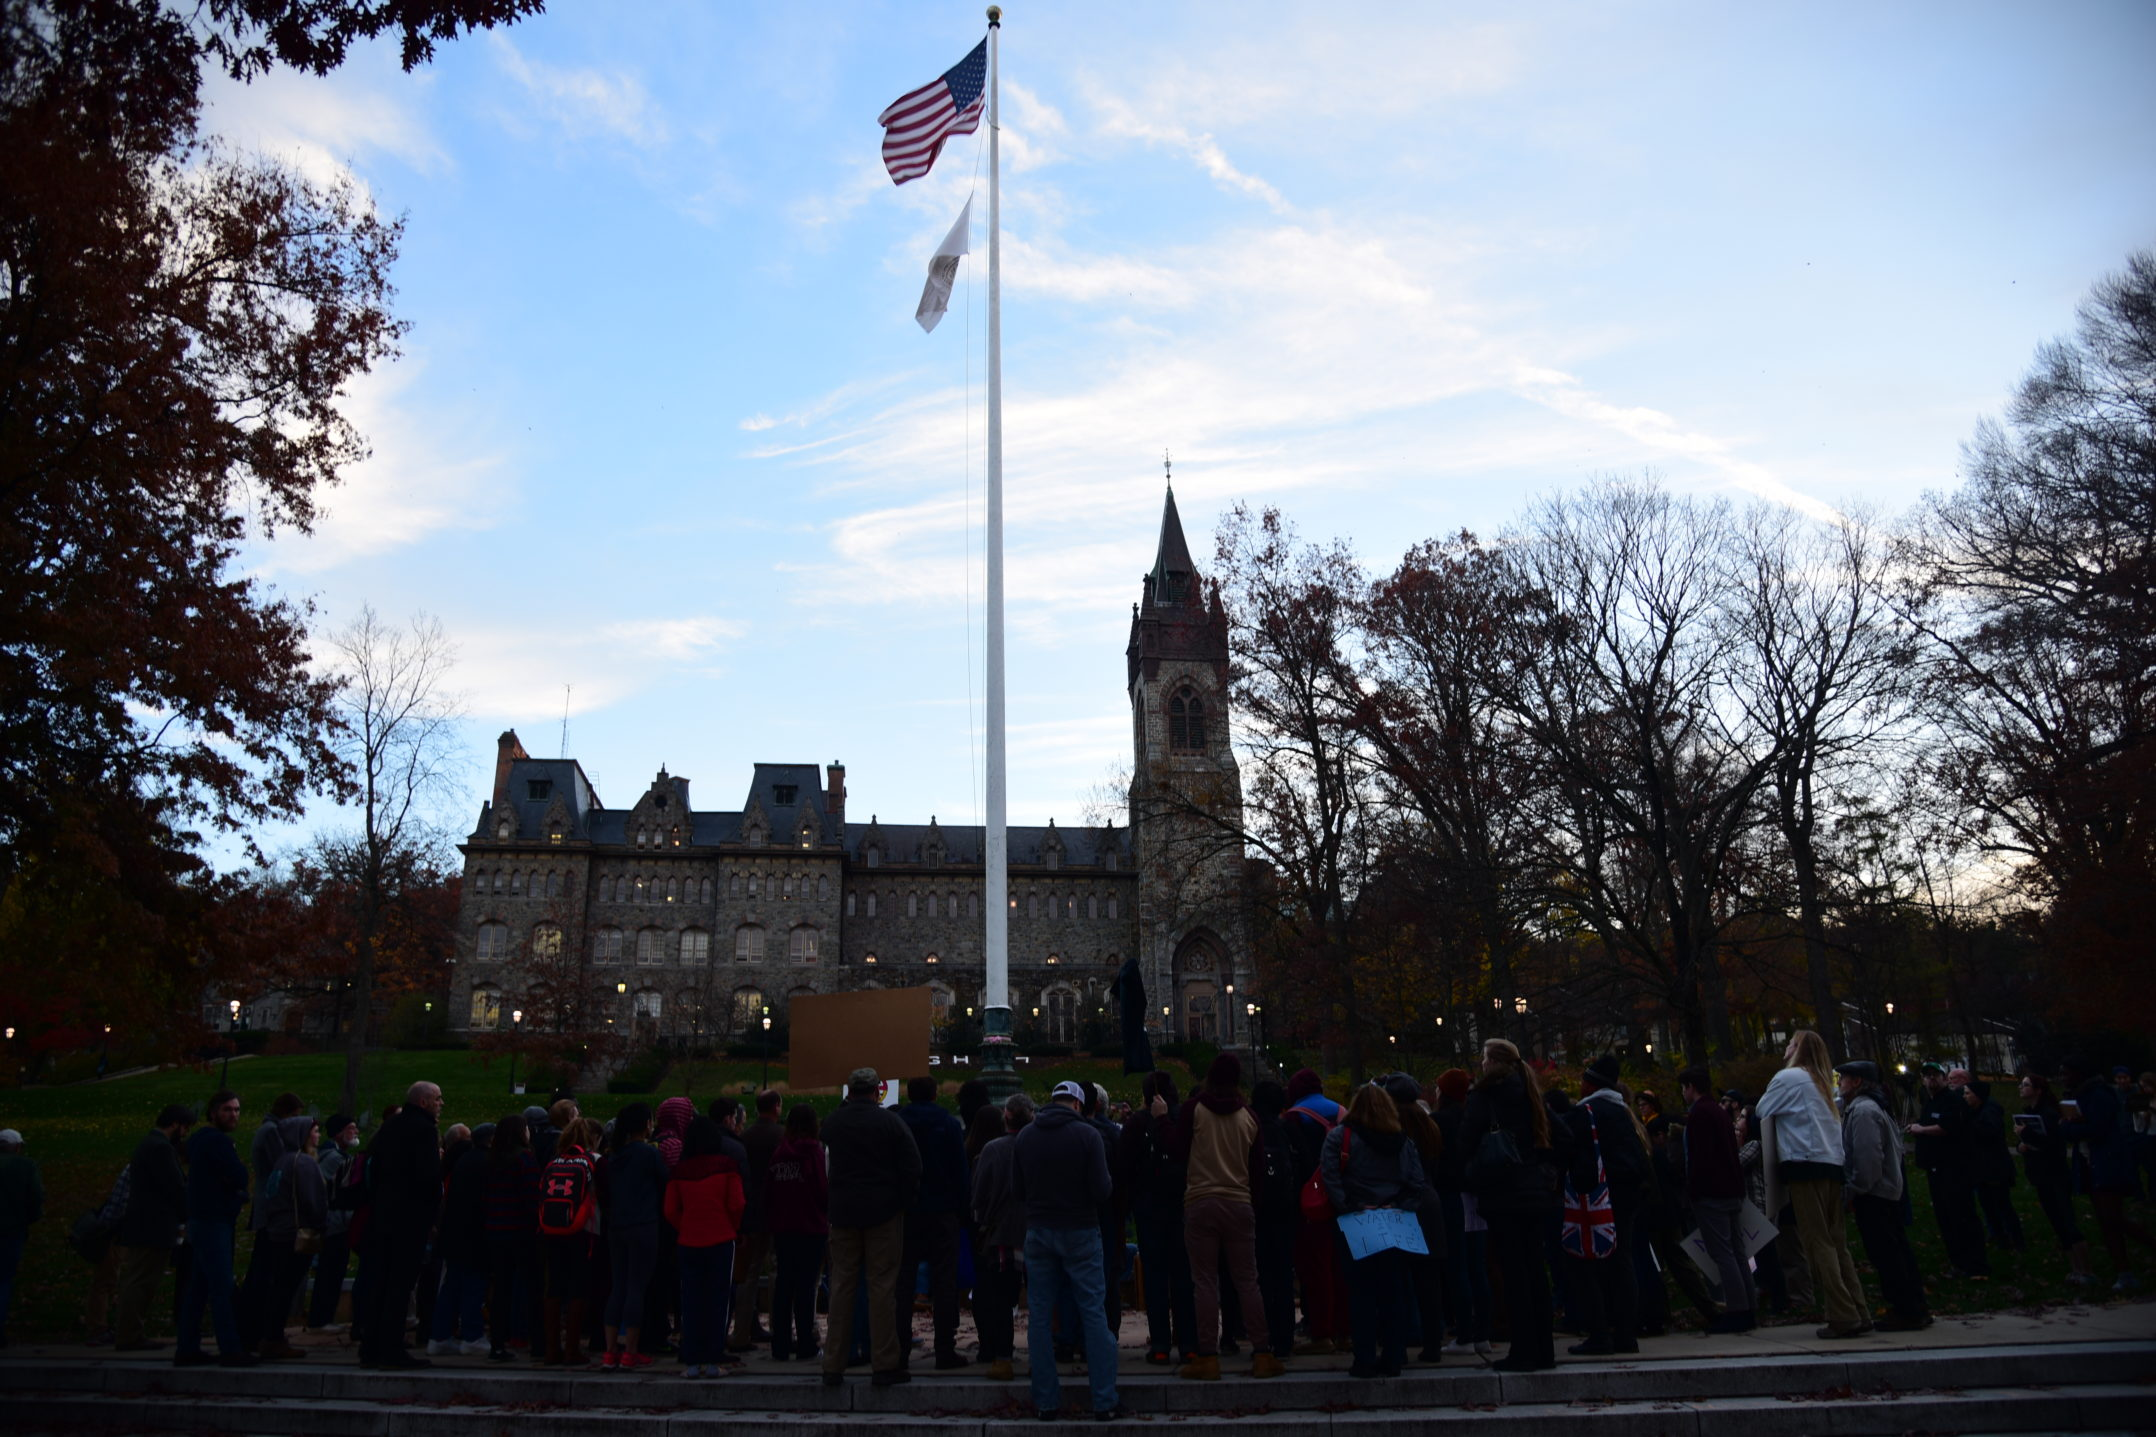 Members of Lehigh University and Bethlehem community gather at the flagpole in protest against the construction of the Dakota Access Pipeline. The protest was organized by the Green Action Club and the Black Student Union. (Ashley Omoma/B&W Staff)